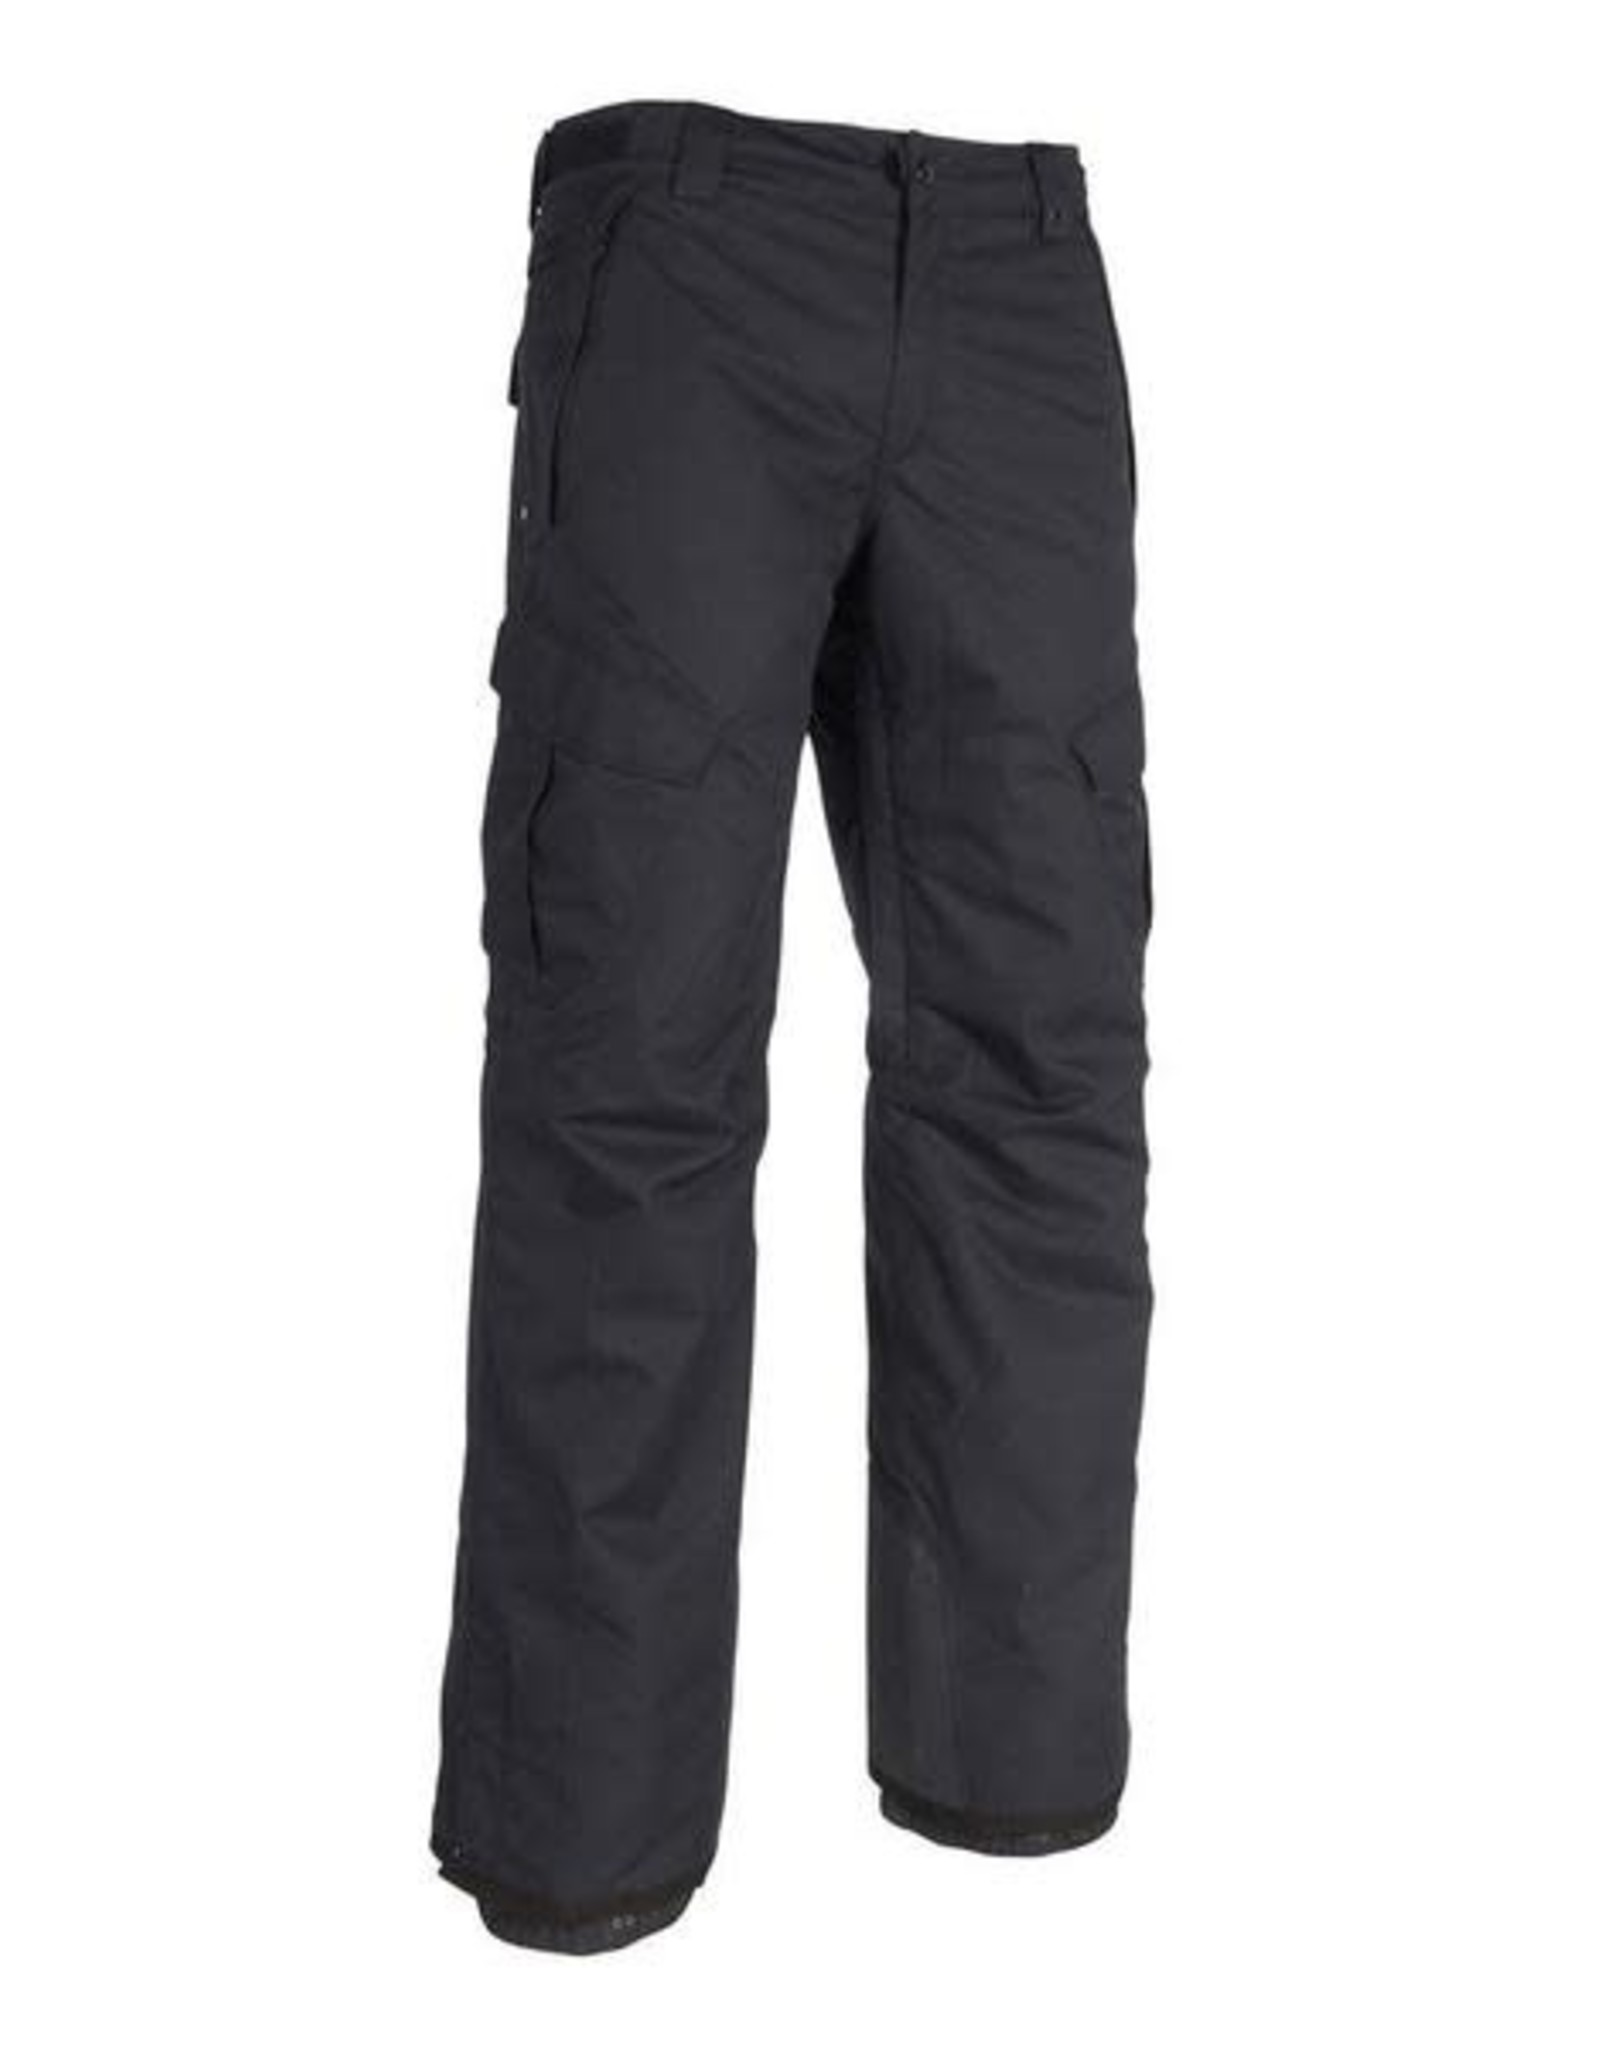 686 686 Men's Infinity Insulated Cargo Pant 2019